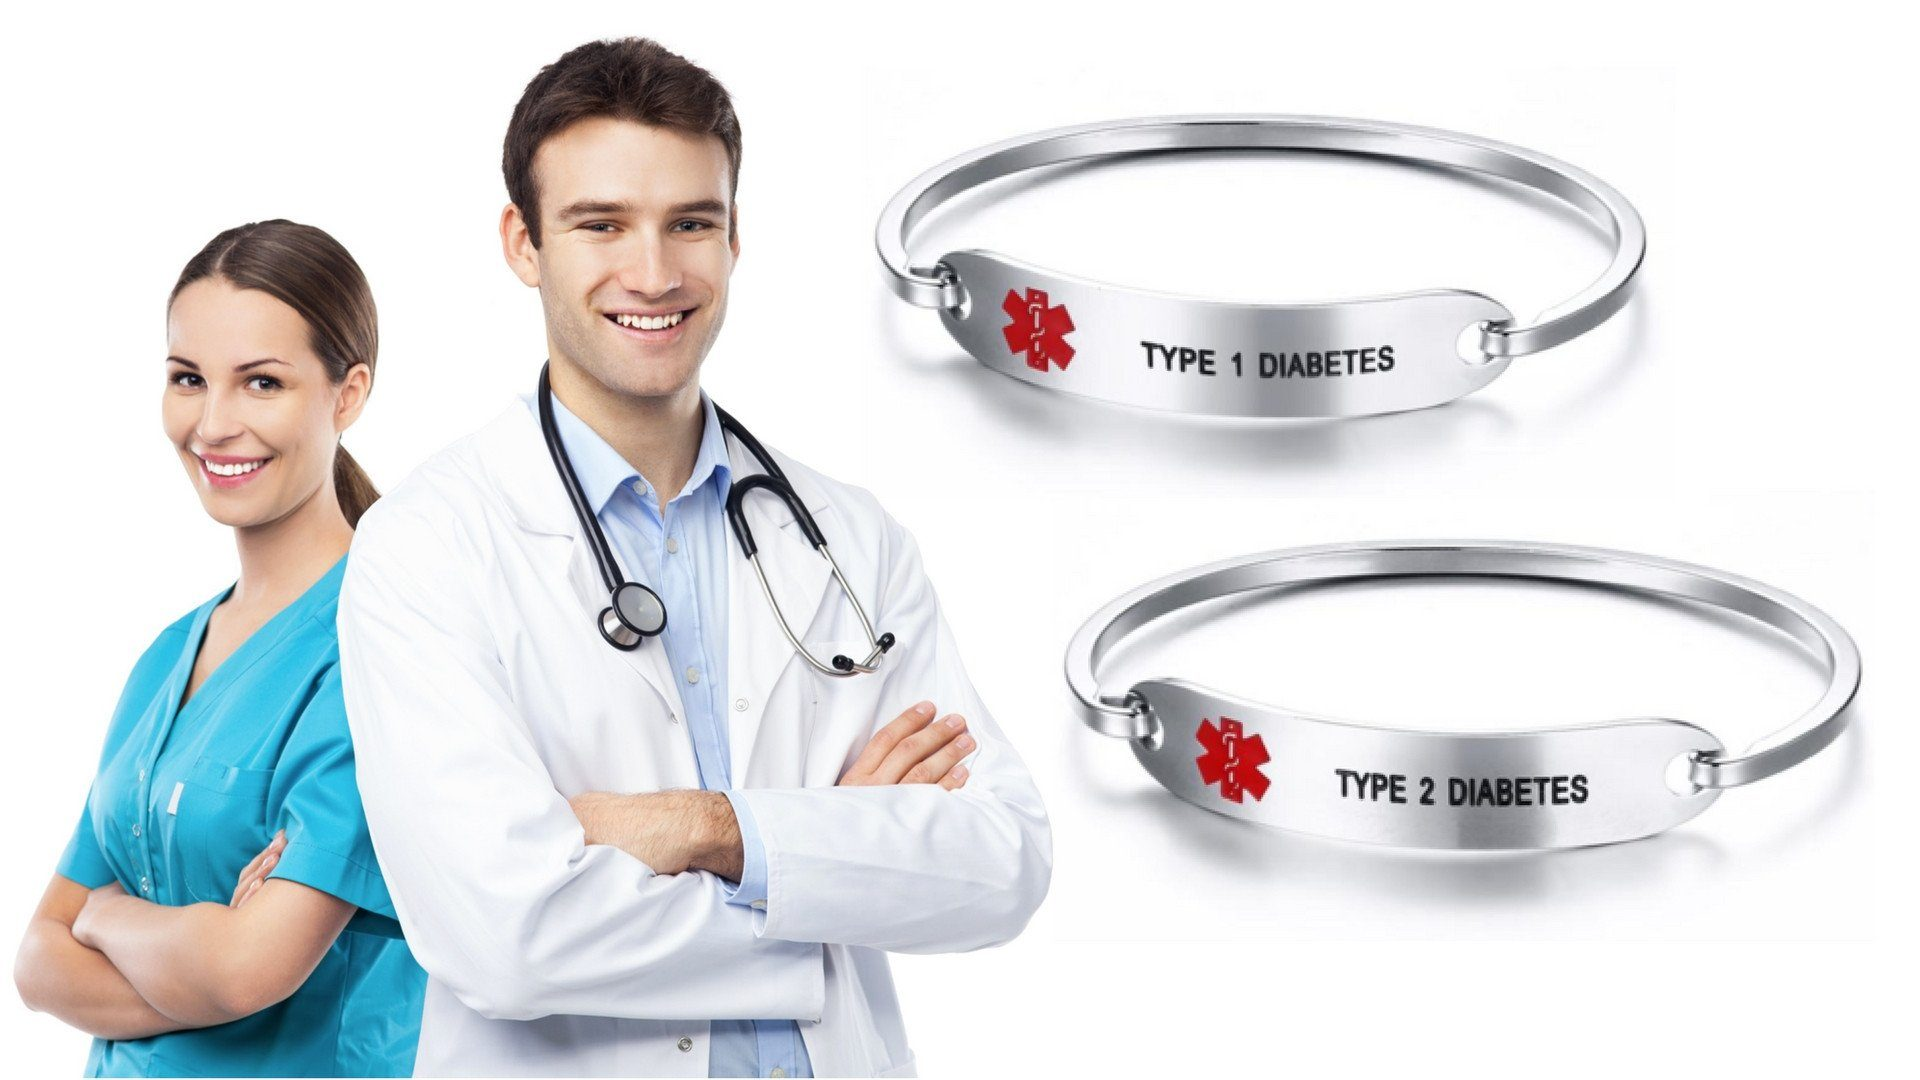 How Diabetes Awareness and Medical Alert Jewelry Can Save Lives